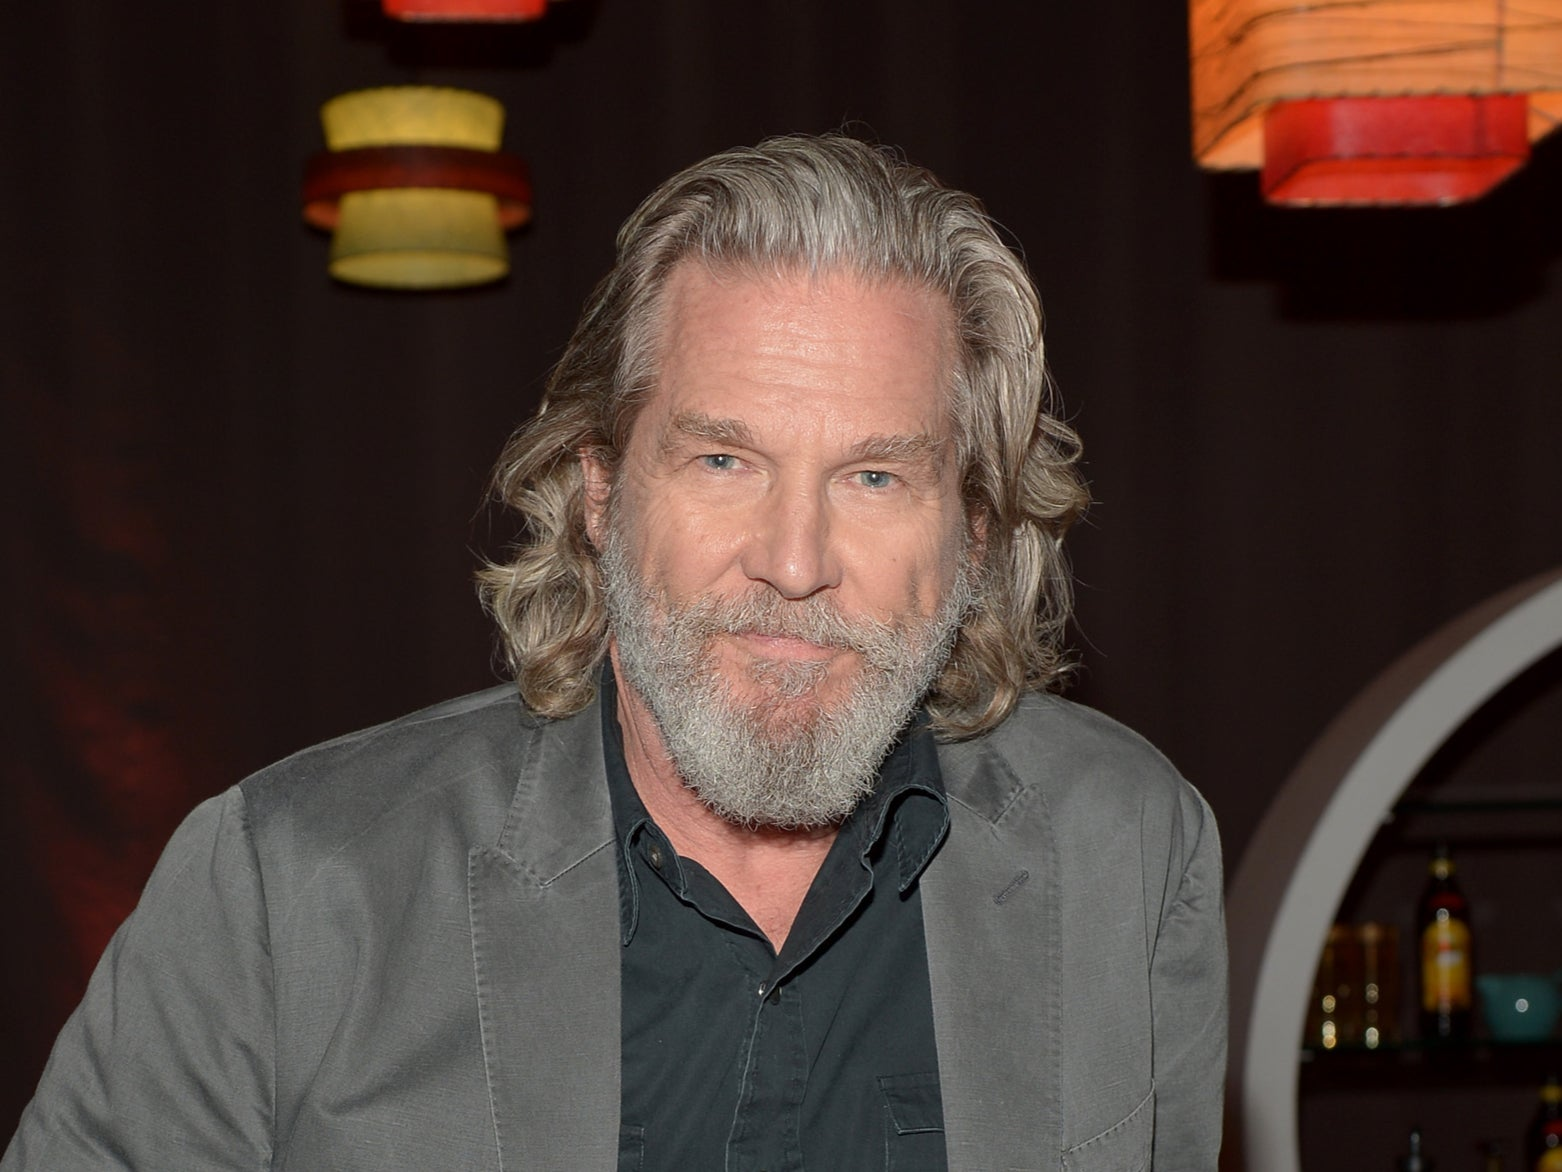 Jeff Bridges reveals lymphoma diagnosis: 'New s*** has come to light'